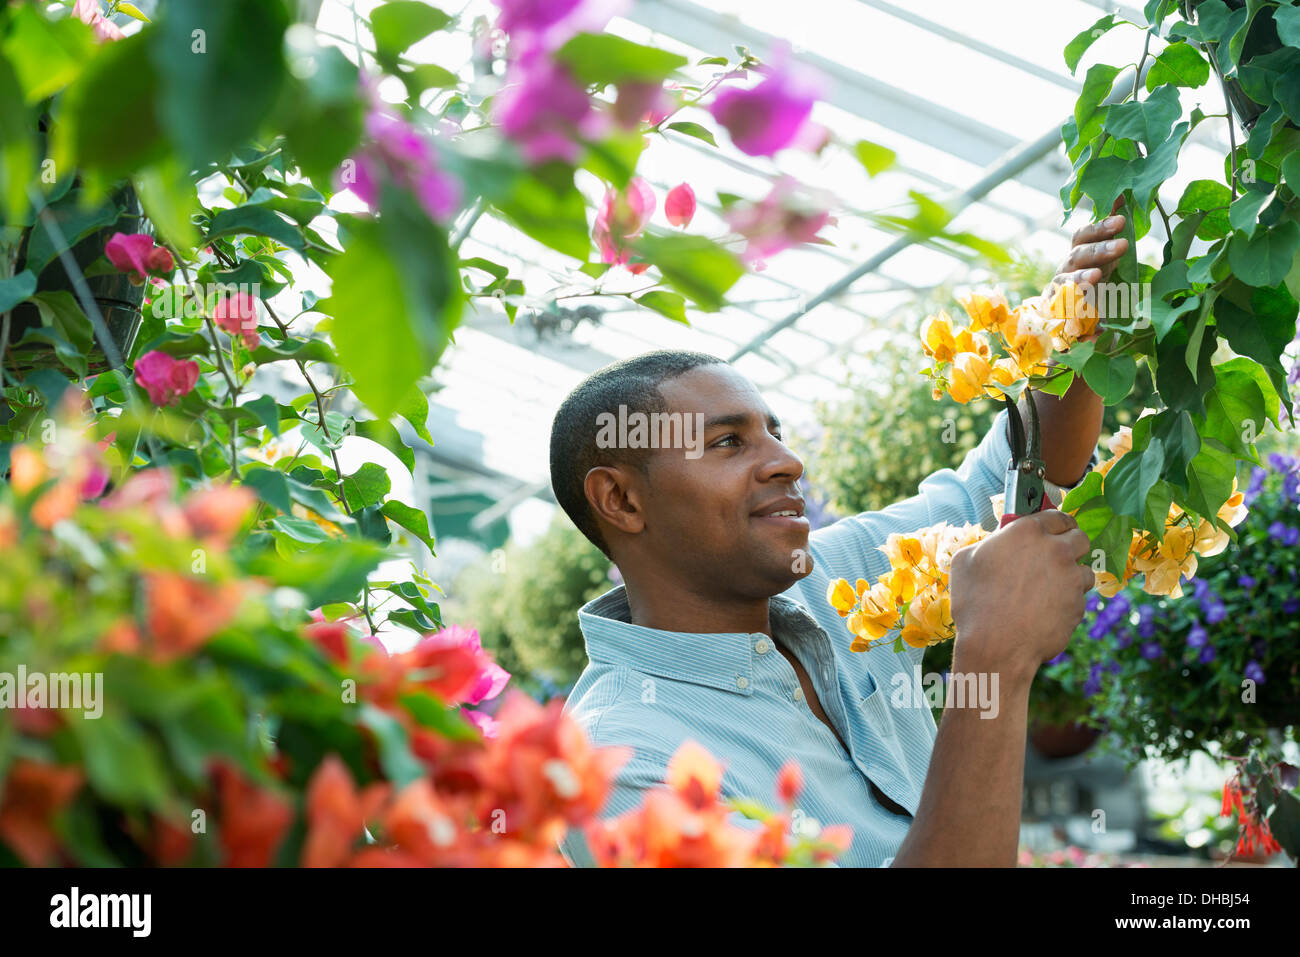 A commercial greenhouse in a plant nursery growing organic flowers. Man working, checking and tending flowers. - Stock Image